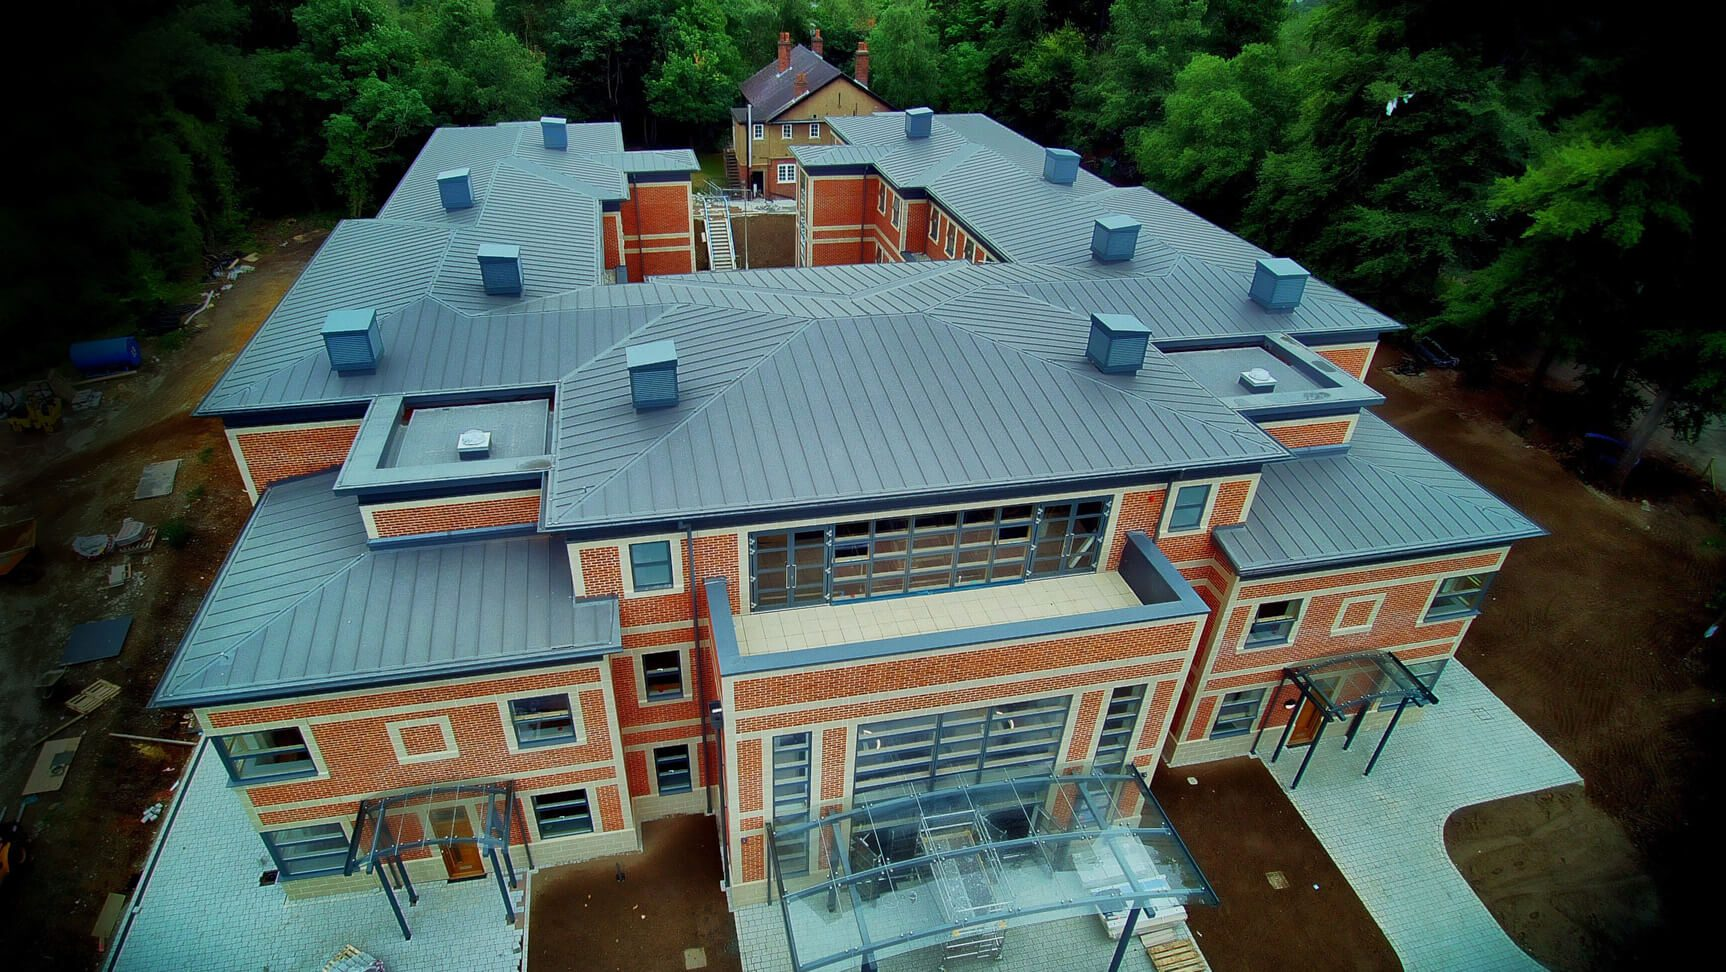 Ics Industrial Roofing And Cladding Specialist In The